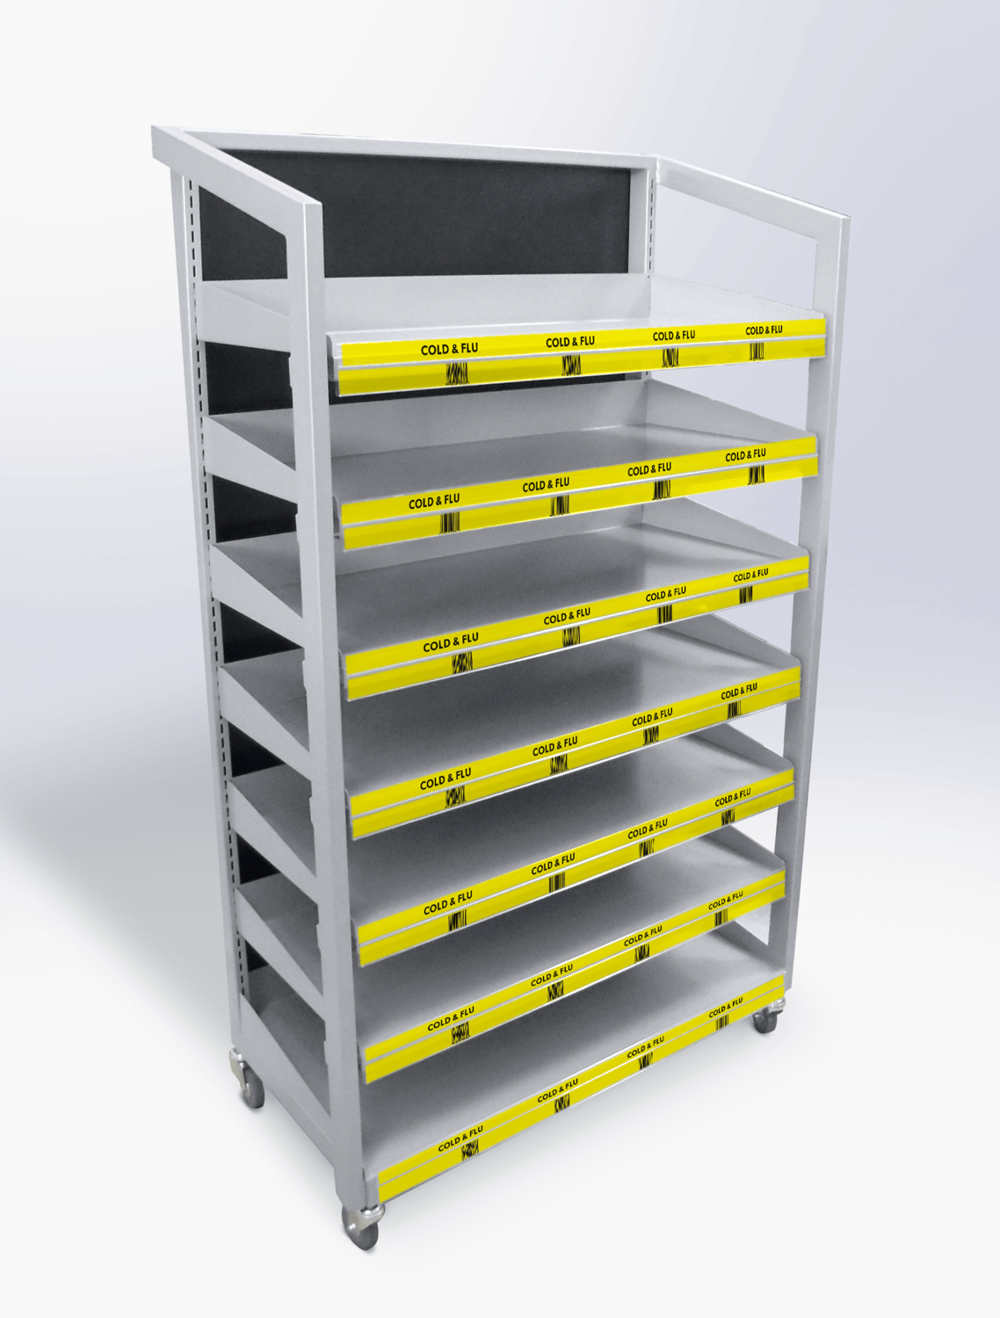 Mobile steel floor shelving unit with adjustable shelves Display design and manufacture | Visuals | Pack and despatch nationwide to retailers